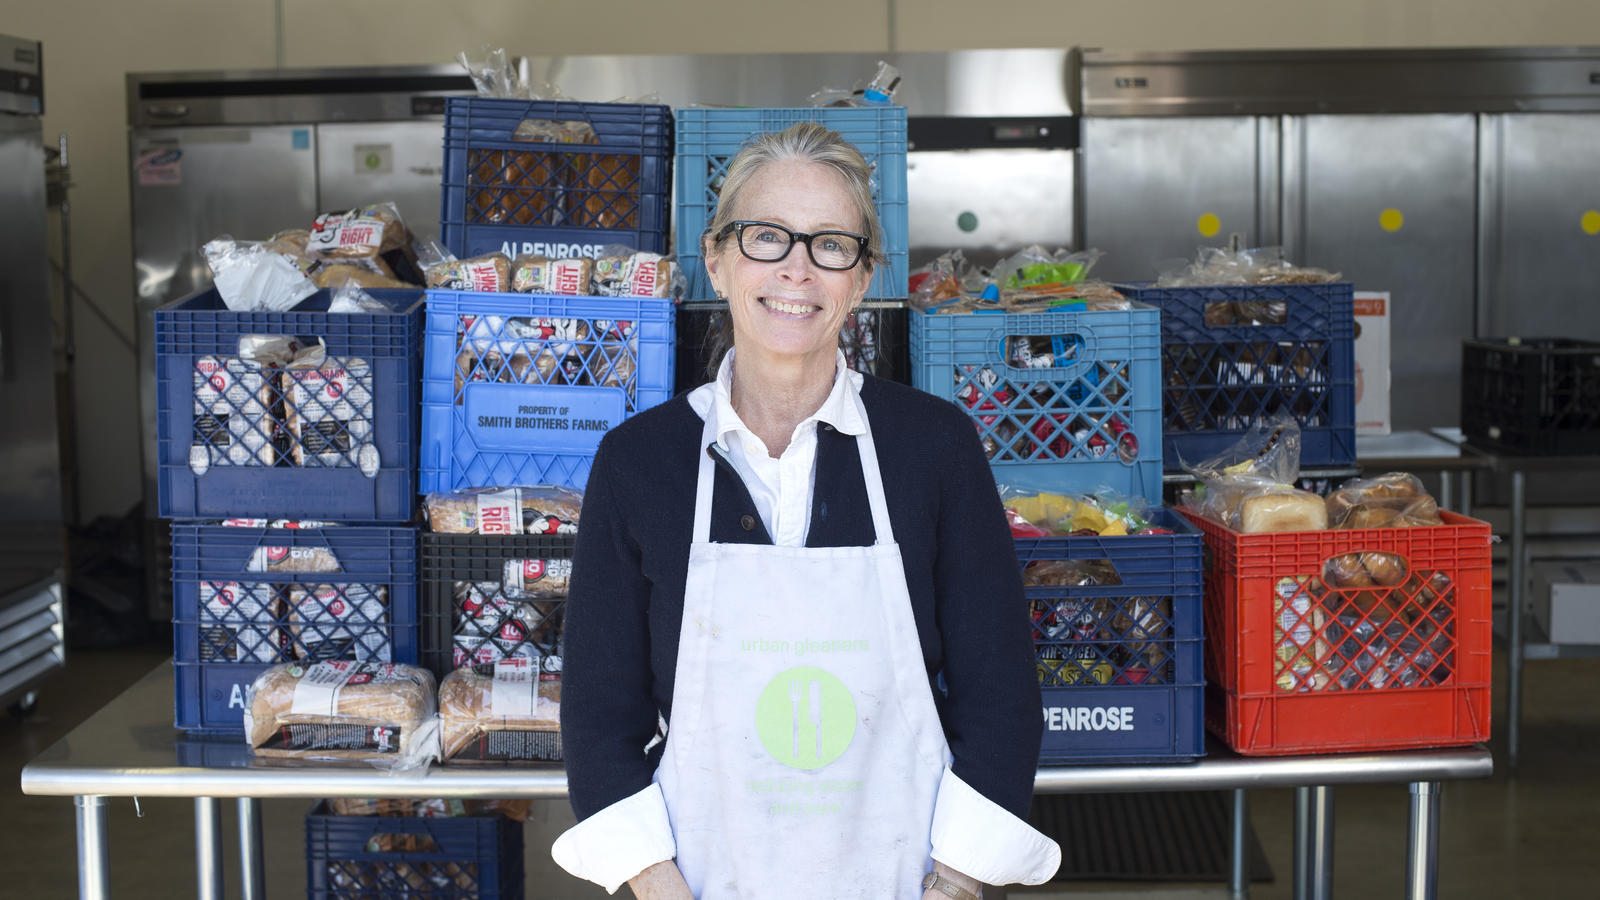 Tracy Oseran, Executive Director of Urban Gleaners, which alleviates hunger by collecting edible food that would otherwise be thrown away and delivering it to those in need throughout the Portland Metro area.